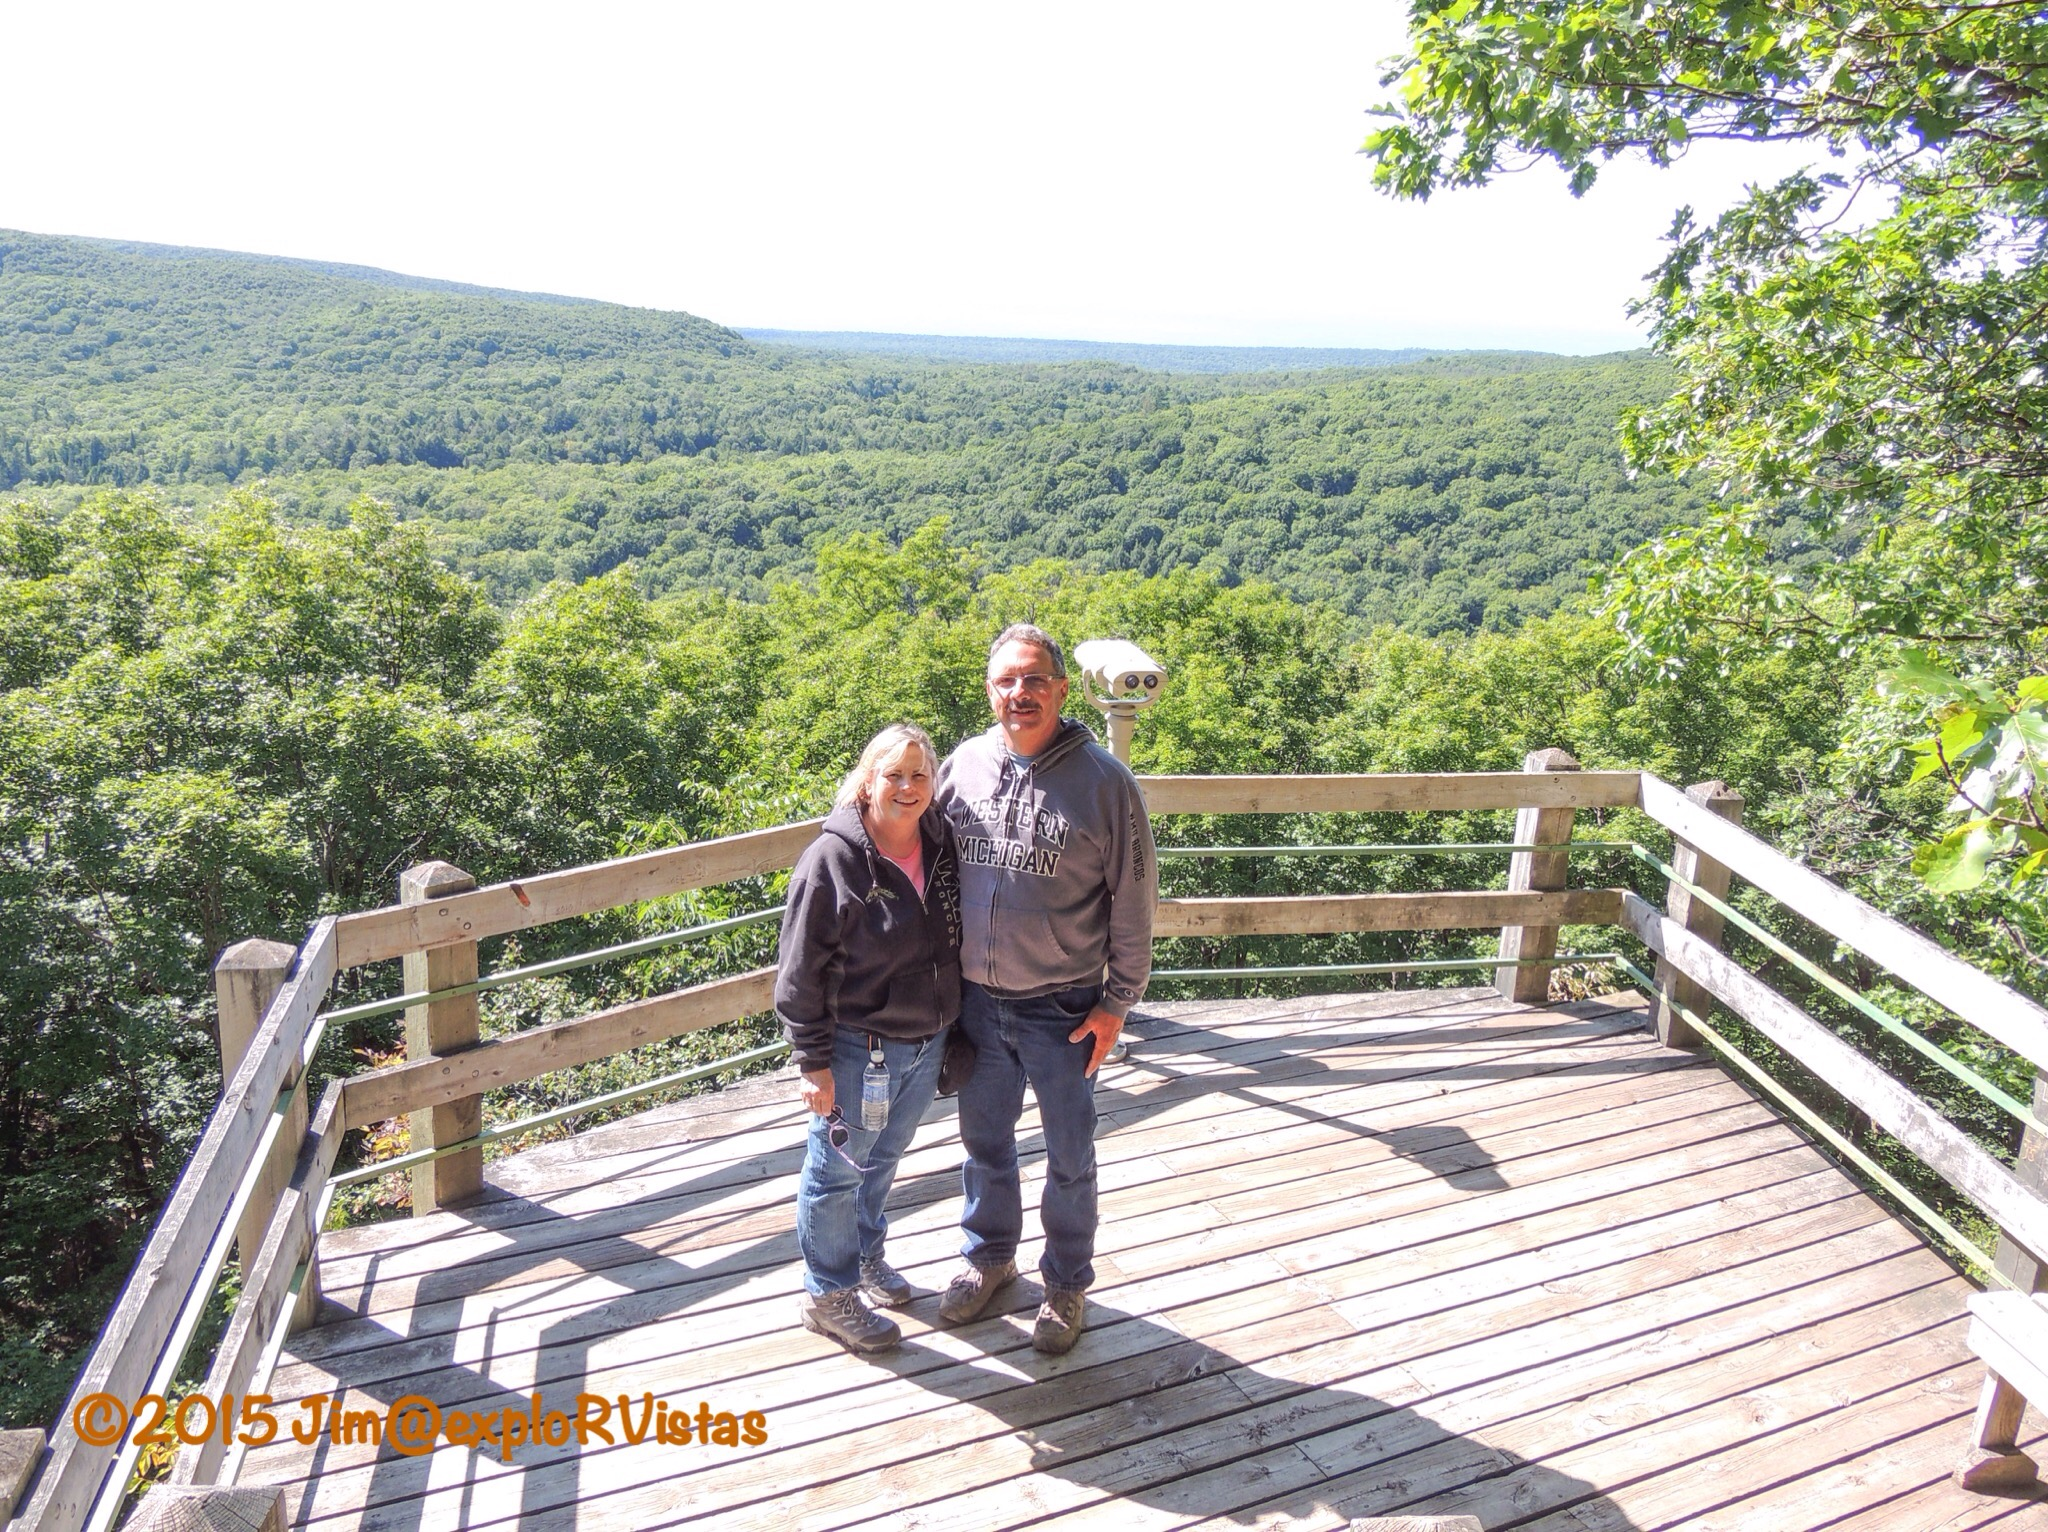 Mt curwood explorvistas two thirds of the way up we came to the lake superior overlook publicscrutiny Image collections